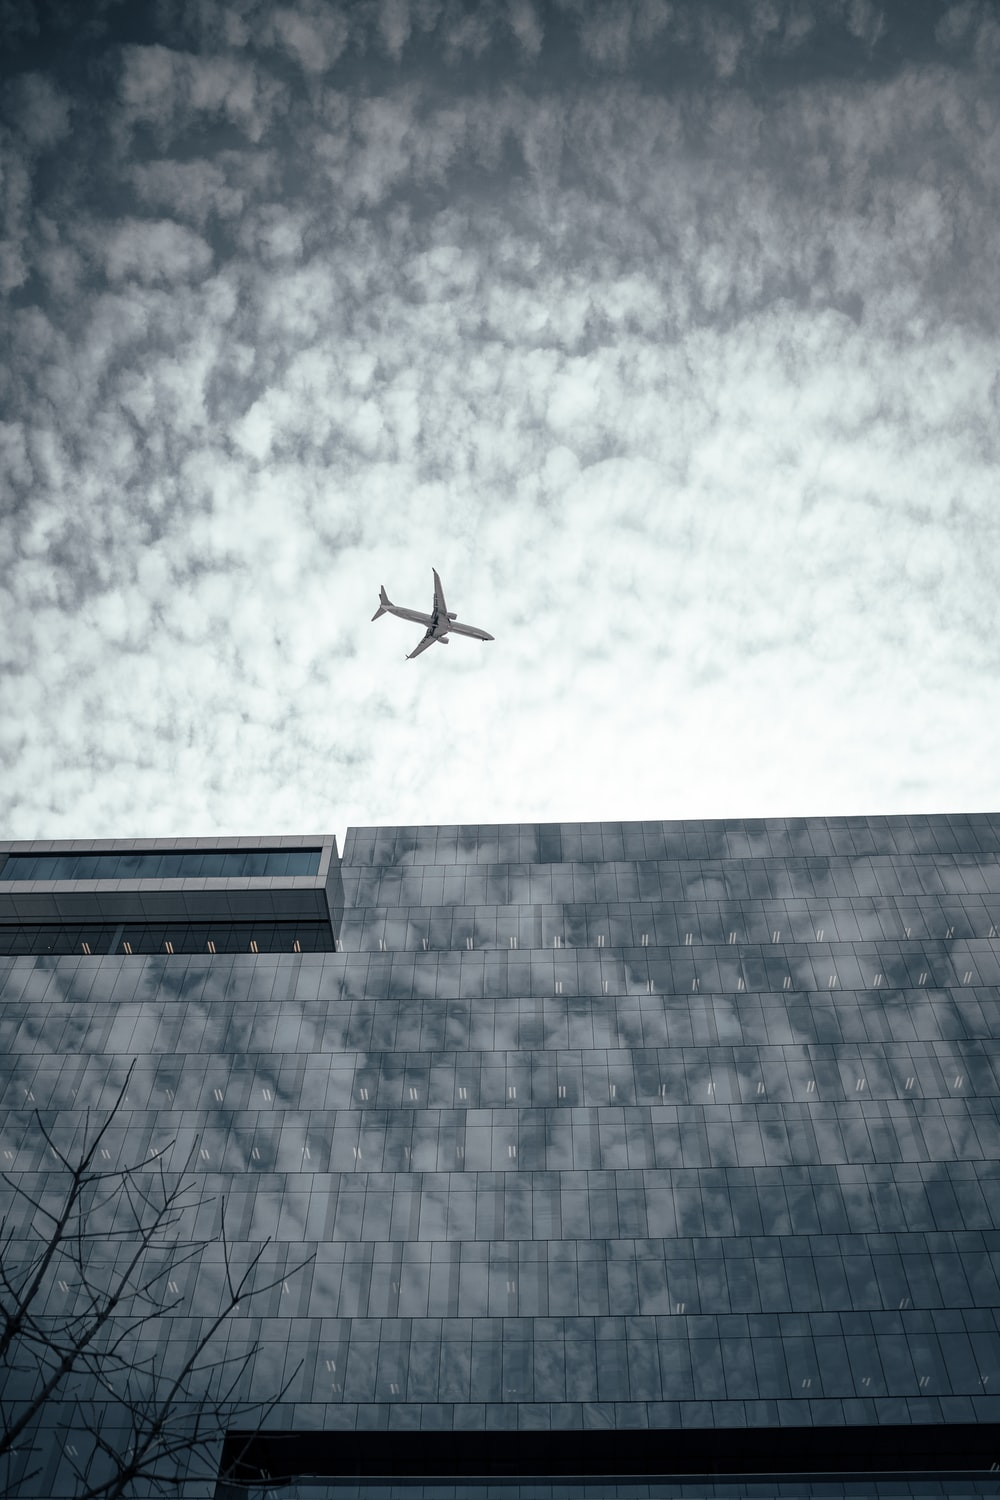 airliner on flight on top of gray high-rise building